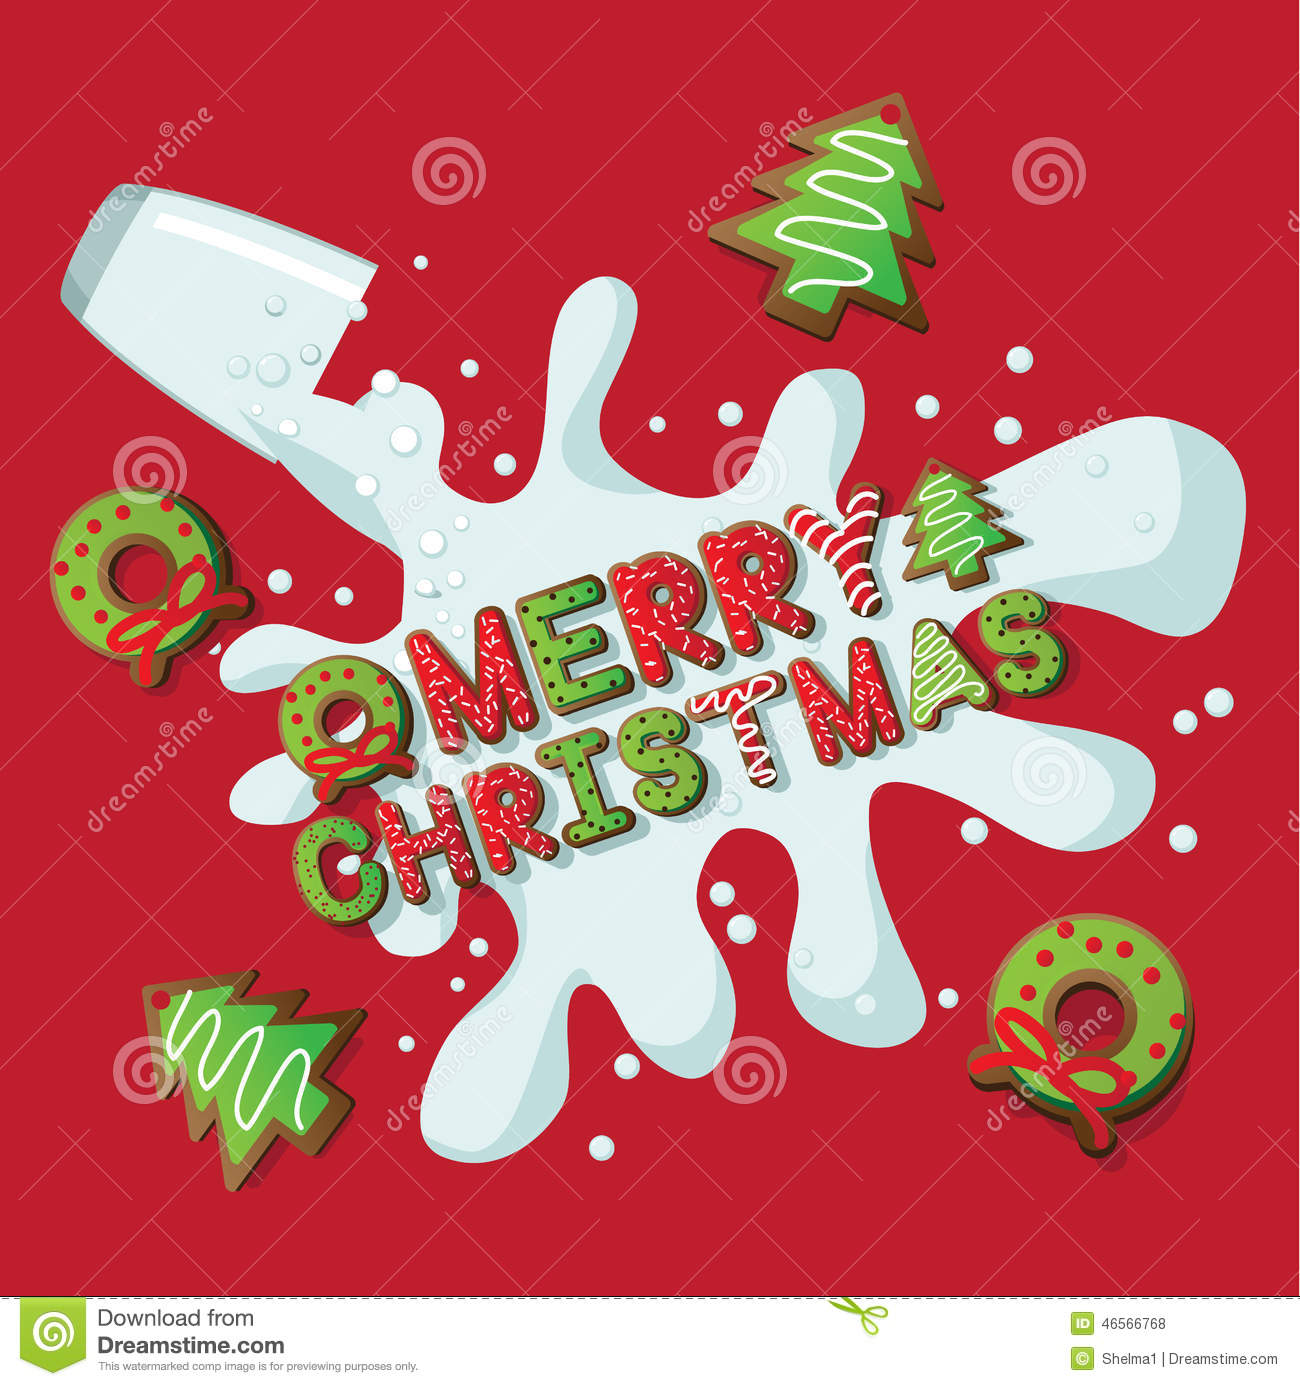 Merry Christmas Cookies And Milk Stock Vector Illustration Of Cute